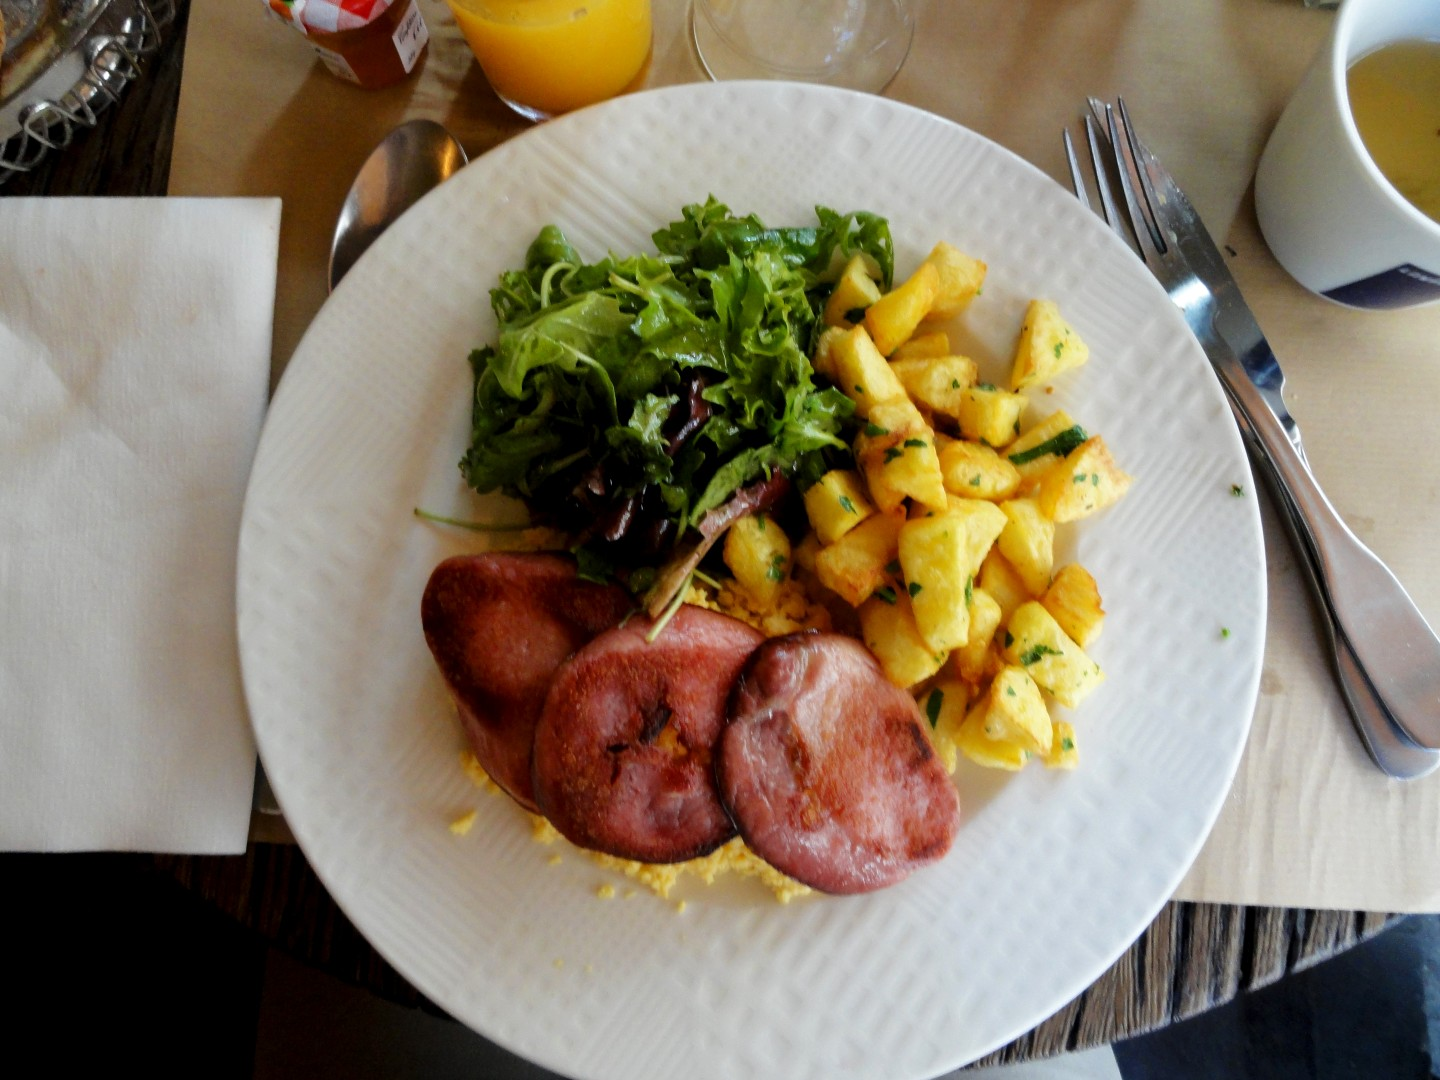 La Quicaillerie, Paris 10e - Brunch